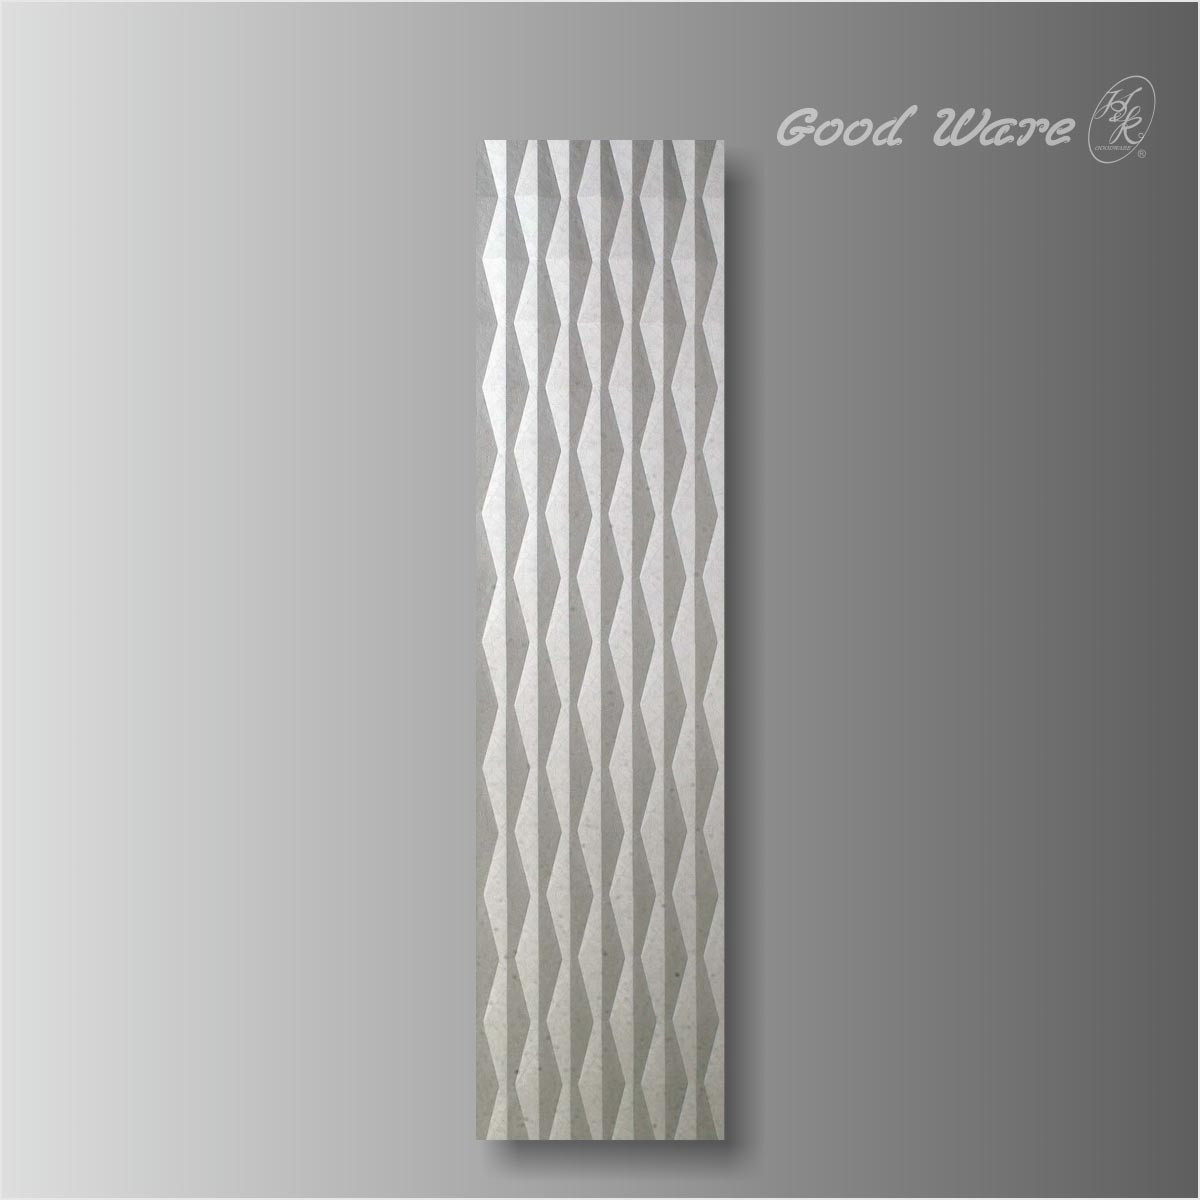 Polyurethane large decorative wall panels for sale